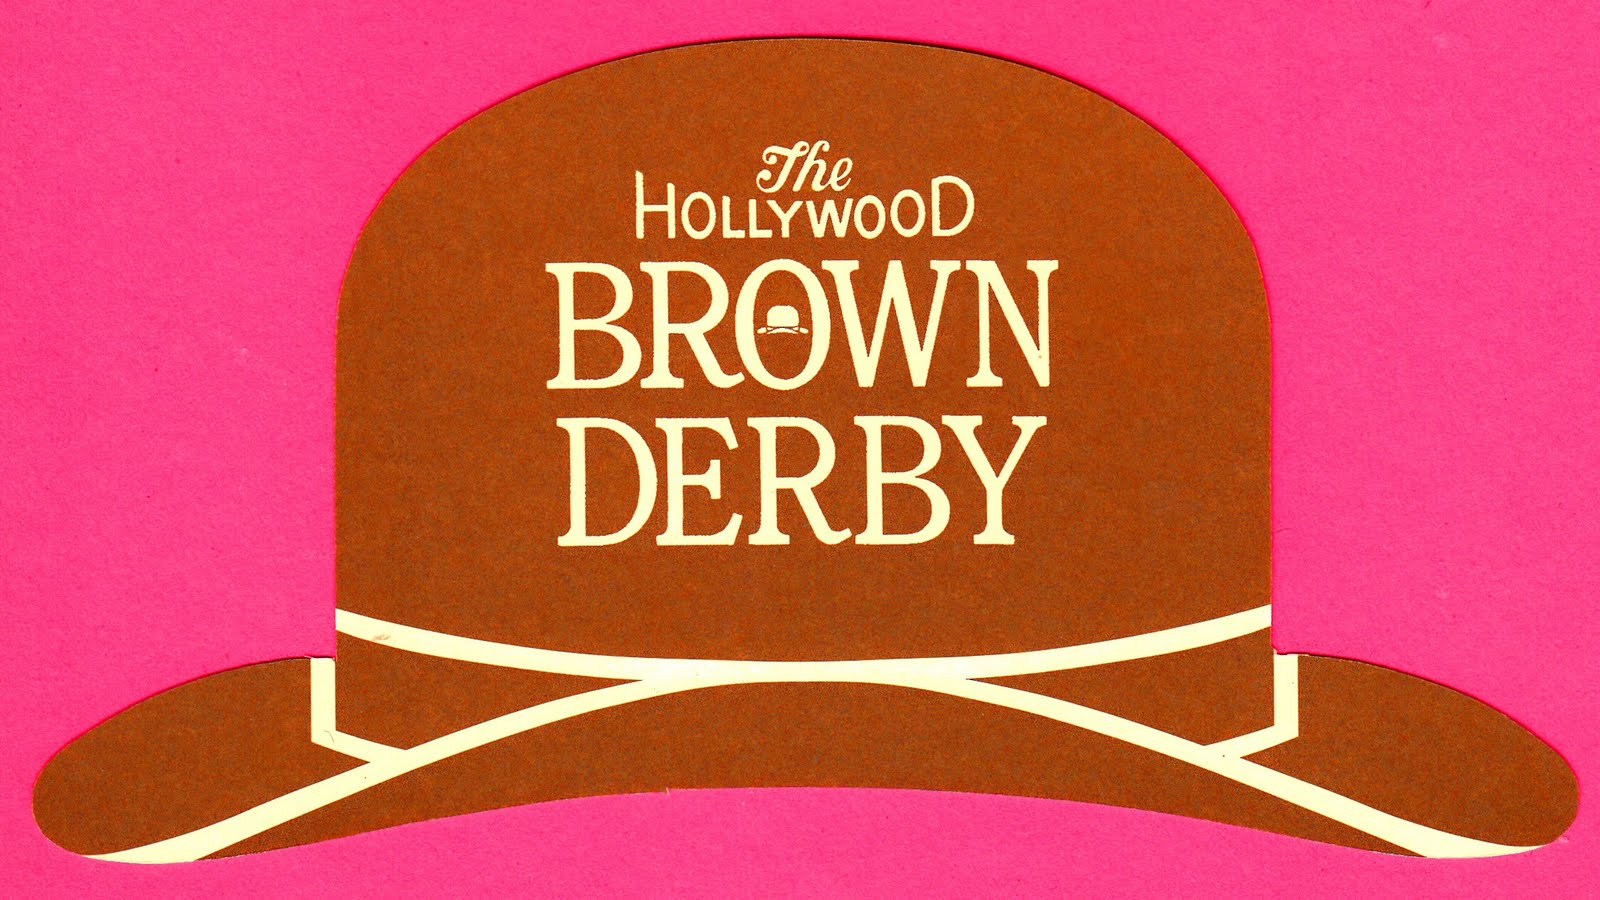 Shaped like a brown derby, this card comes from an eponymous version of that storied Hollywood hot spot (which closed in 1980), faithfully replicated at ...